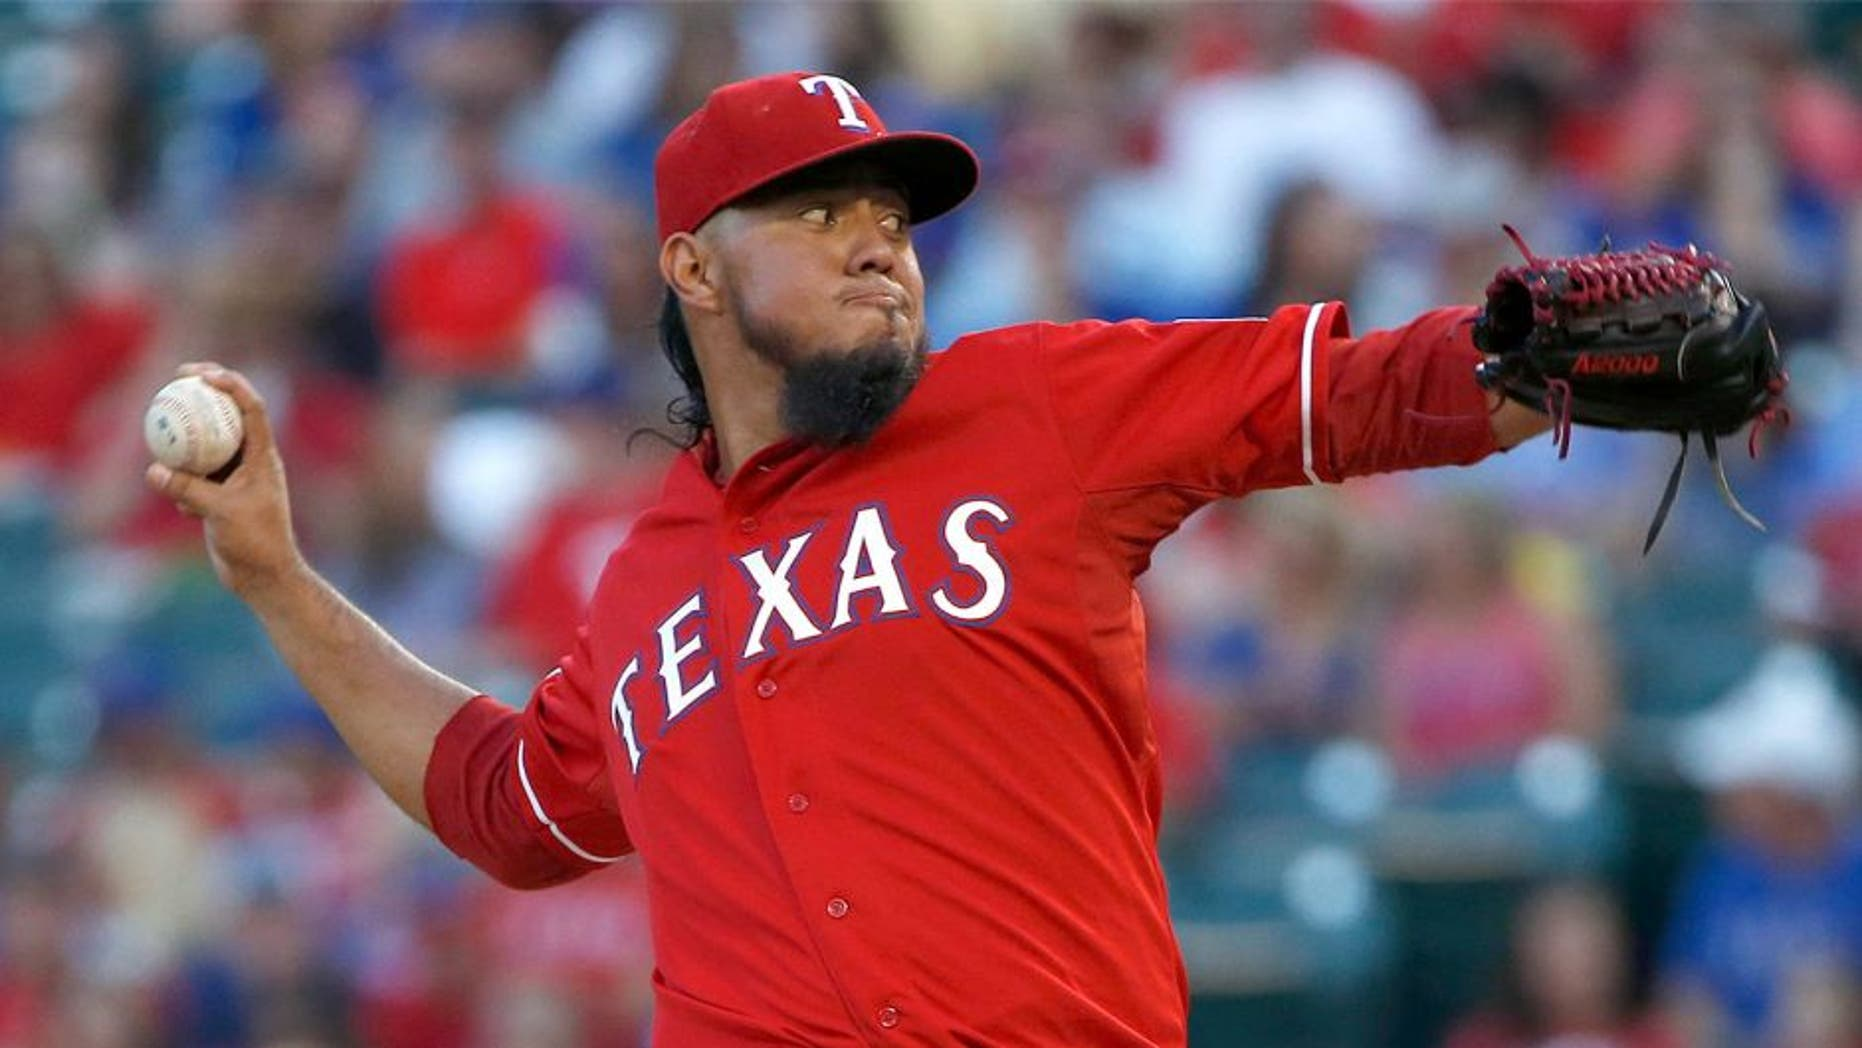 ARLINGTON, TX - SEPTEMBER 12: Yovani Gallardo #49 of the Texas Rangers pitches against the Oakland Athletics in the top of the first inning at Globe Life Park in Arlington on September 12, 2015 in Arlington, Texas. (Photo by Ron Jenkins/Getty Images)